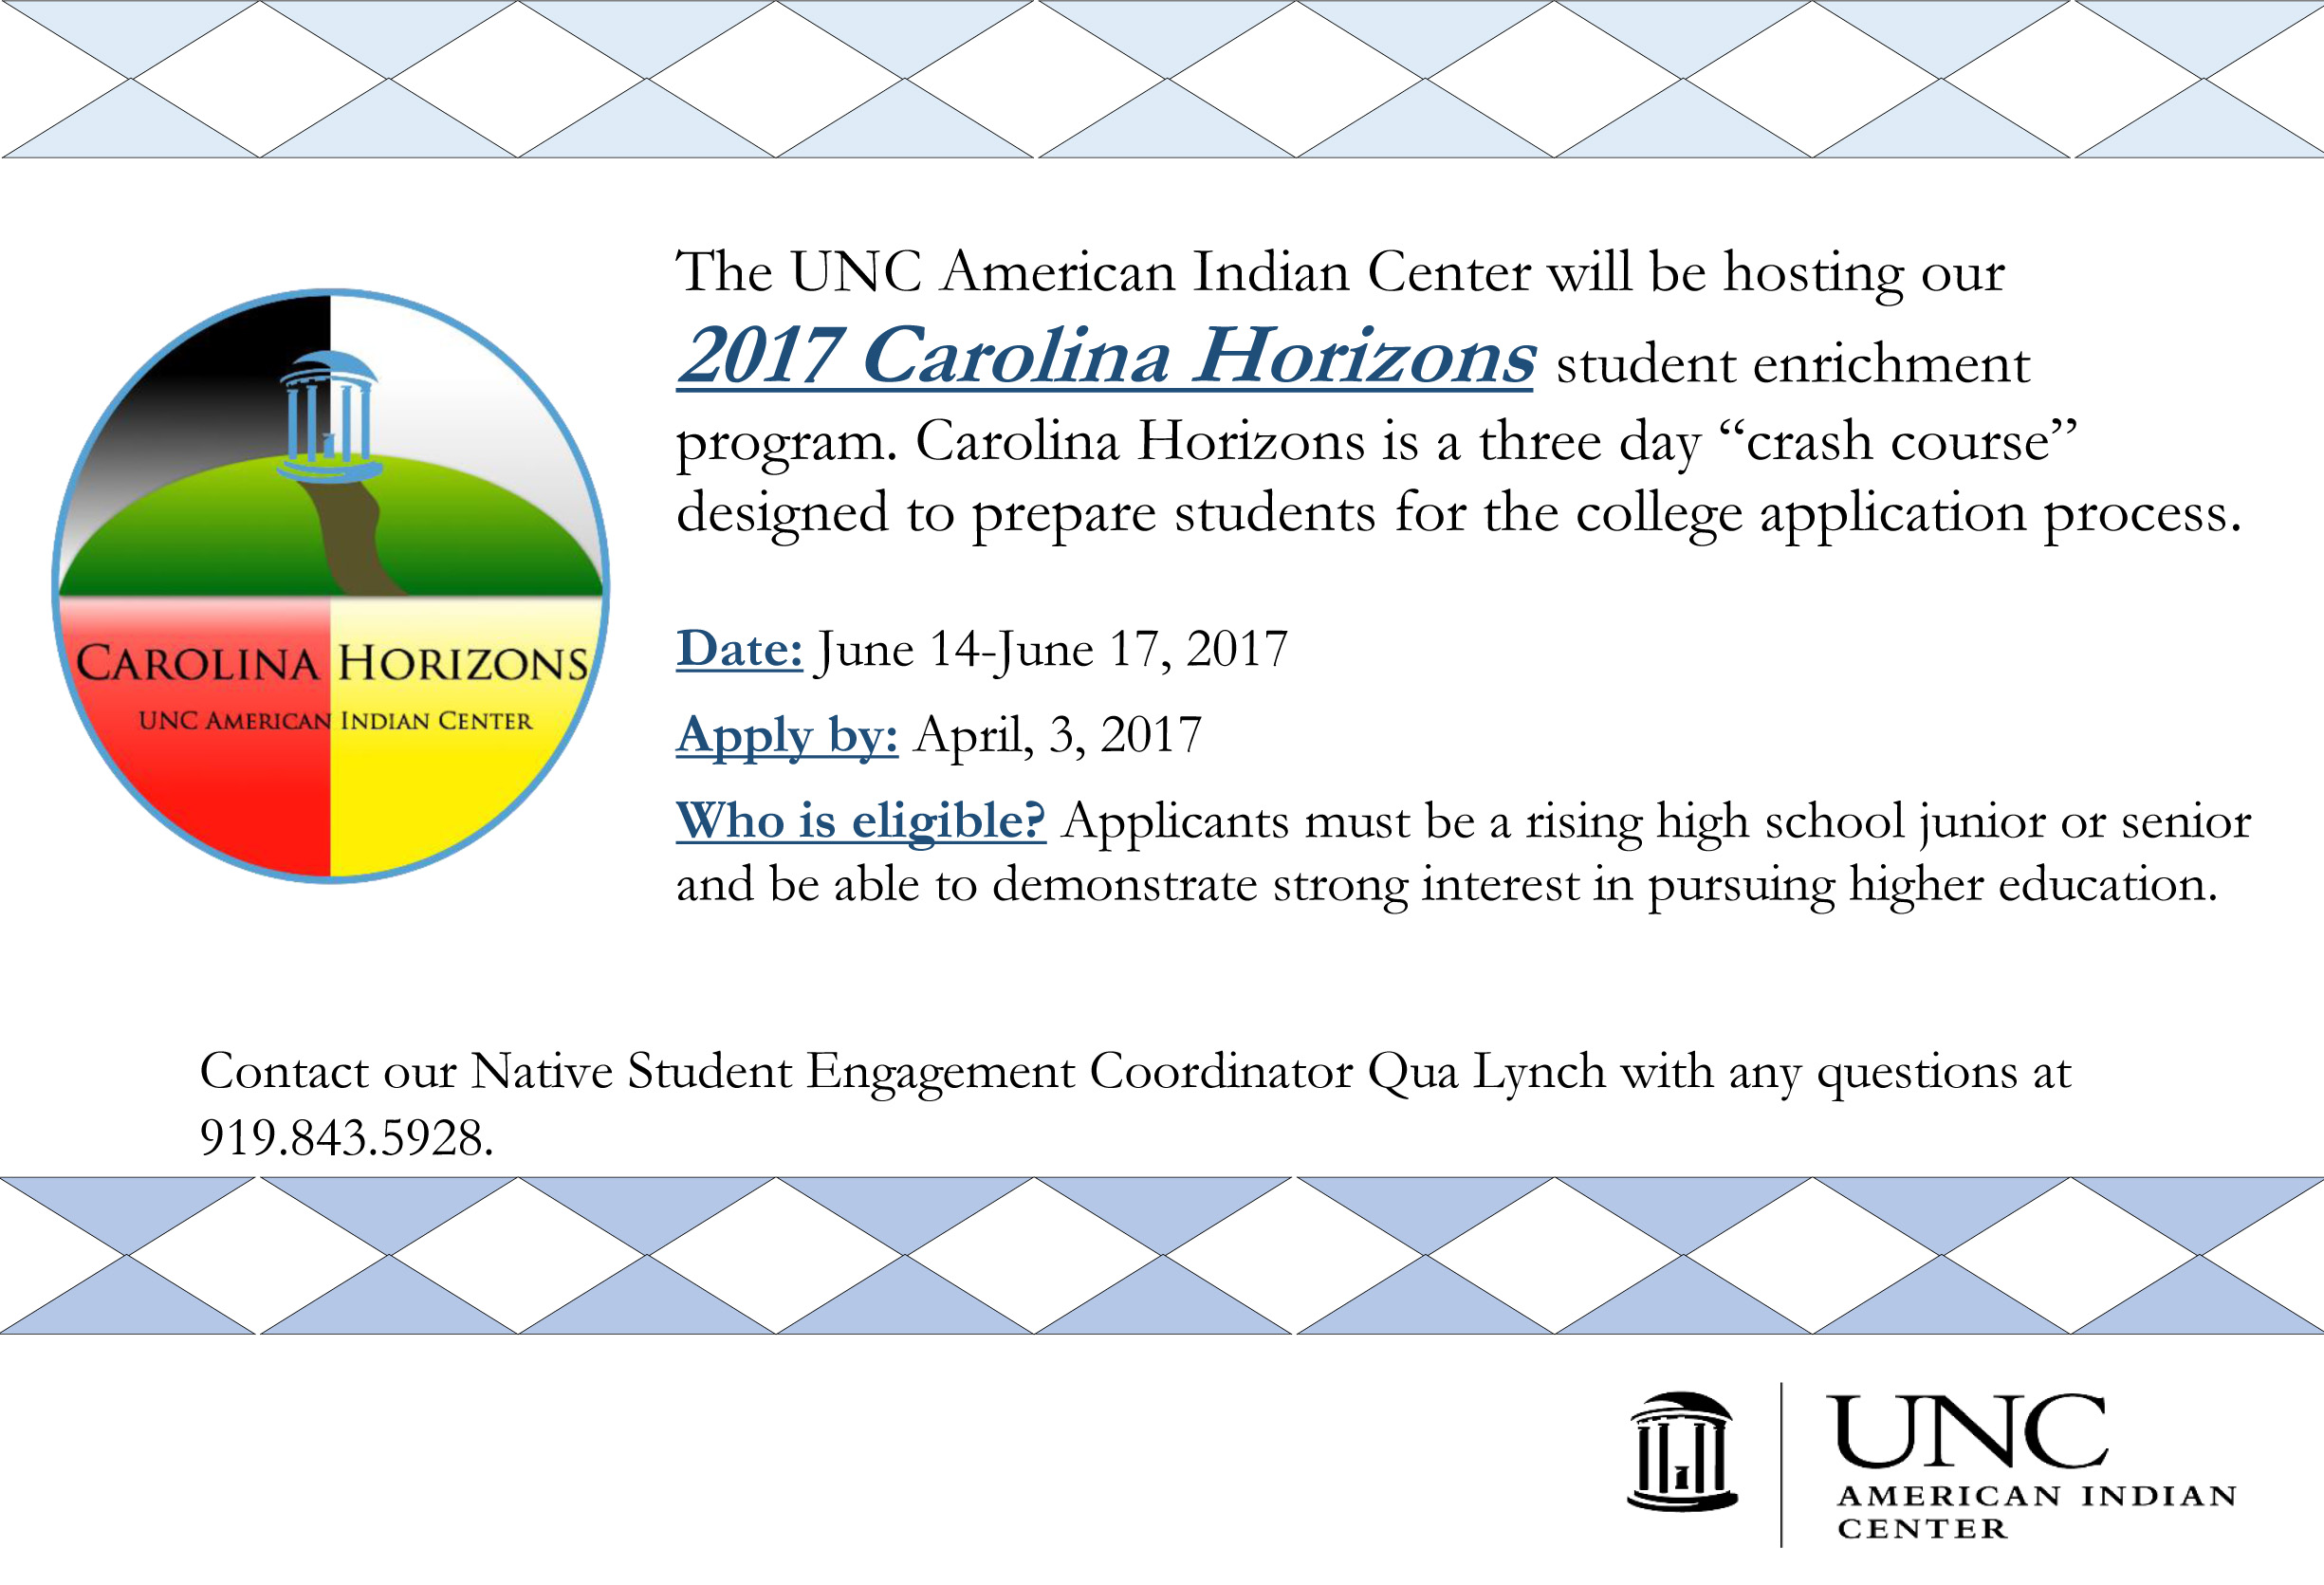 american n center carolina horizons applications closed the unc american n center will be hosting our 2017 carolina horizons student enrichment program carolina horizons is a three day crash course